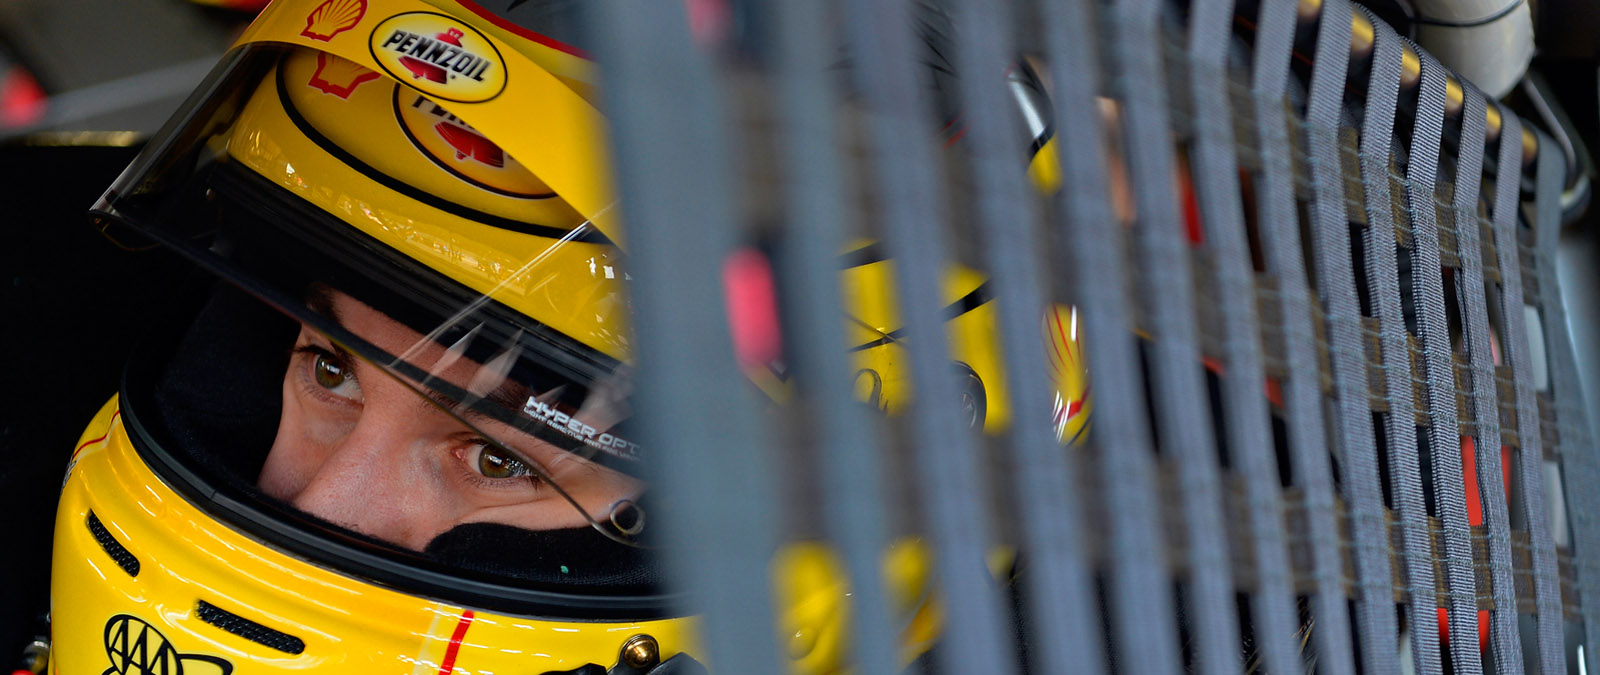 Joey-Logano-Richmond-Preview-2014